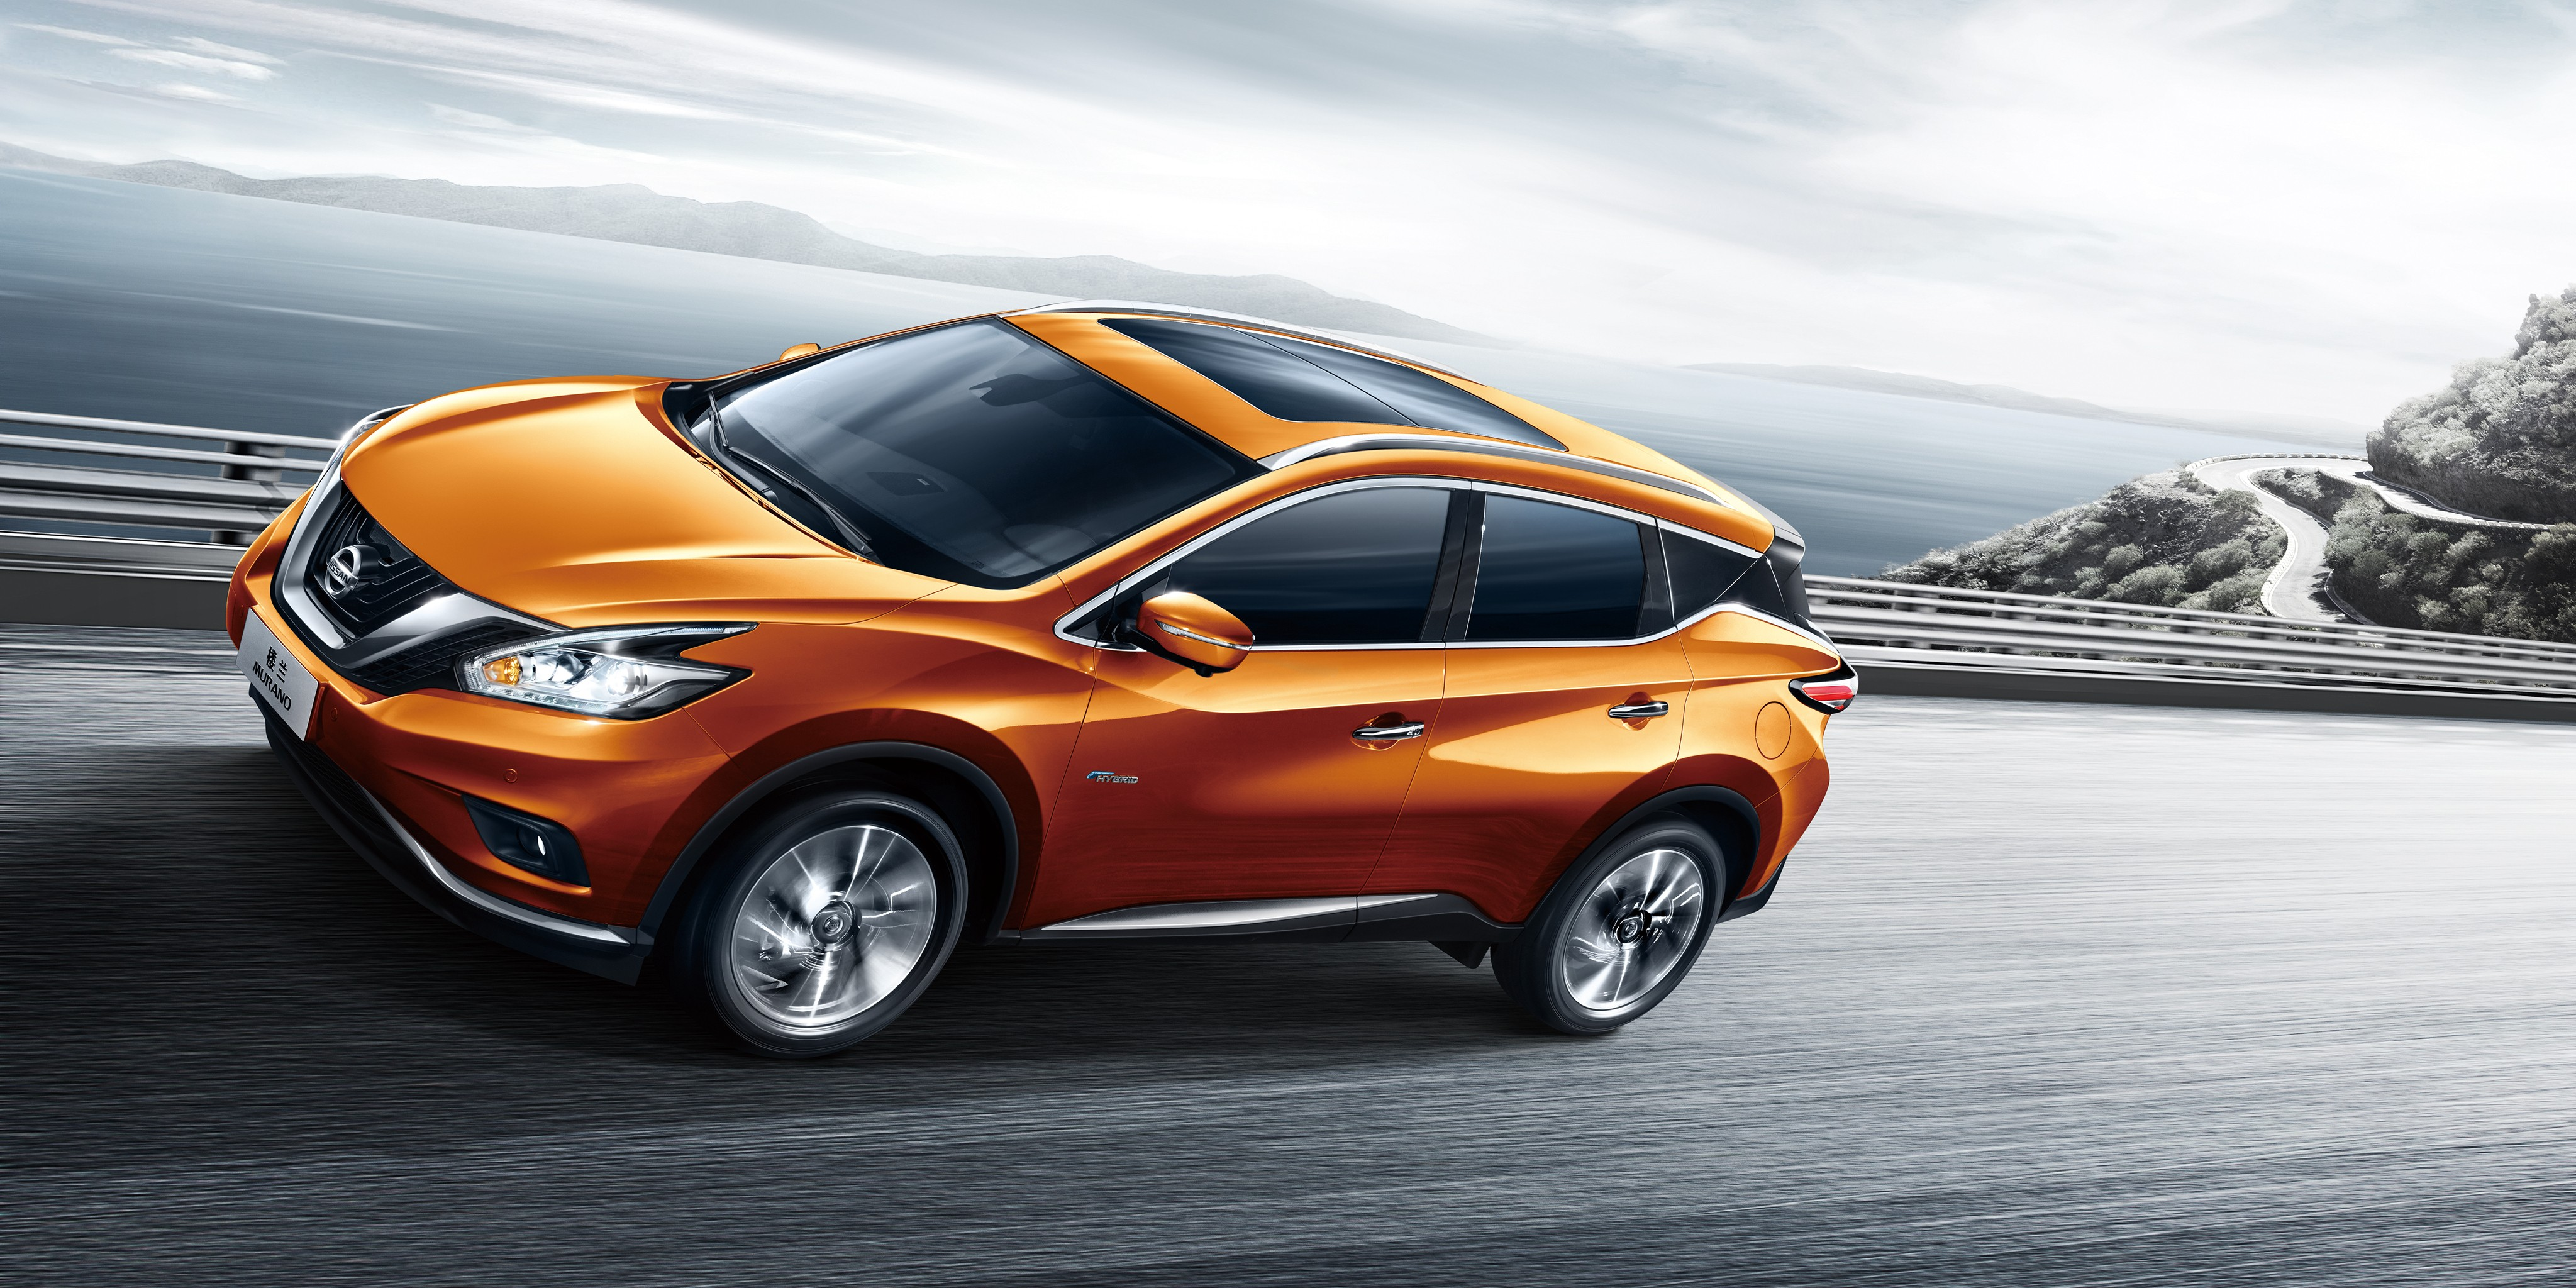 2016 nissan murano hybrid goes on sale in the usa around 600 units allocated autoevolution. Black Bedroom Furniture Sets. Home Design Ideas